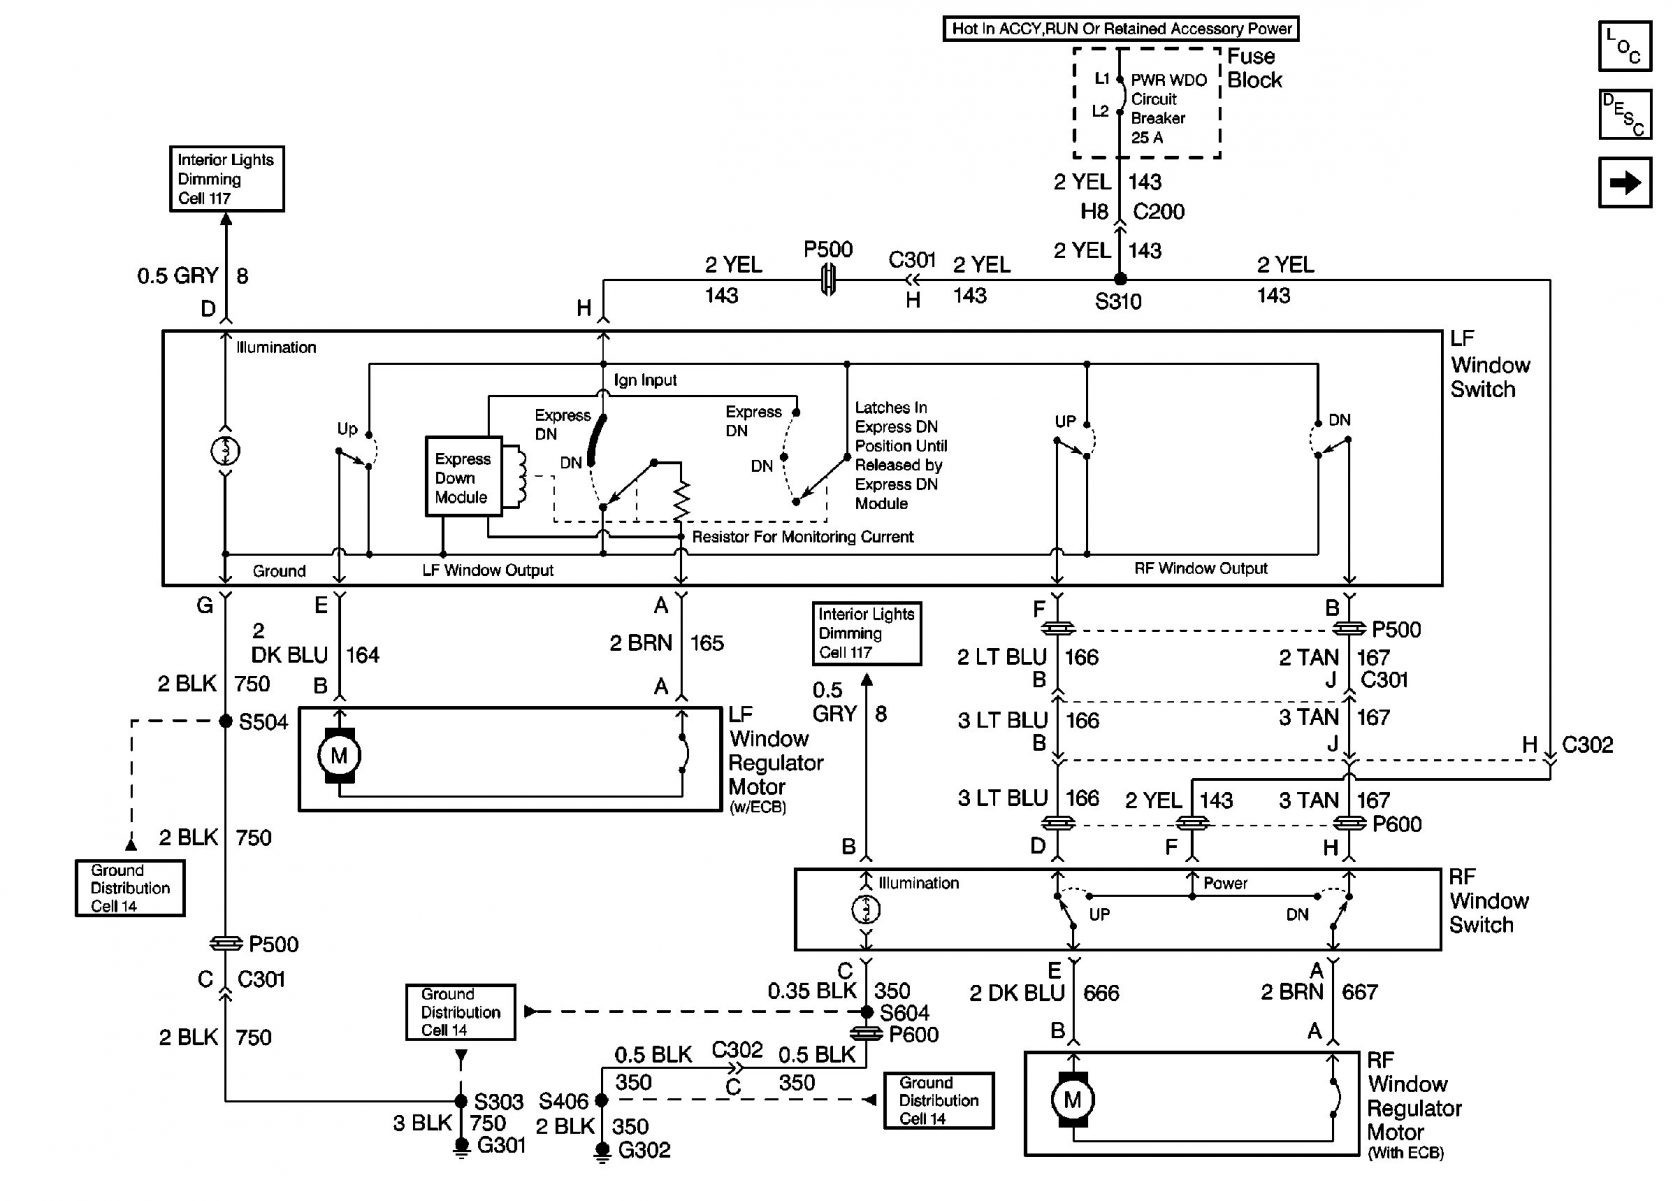 2000 subaru outback parts diagram car wiring diagrams explained u2022 rh justinmyers co 2013 Subaru Outback Engine Diagram 97 Subaru Legacy Engine Diagram